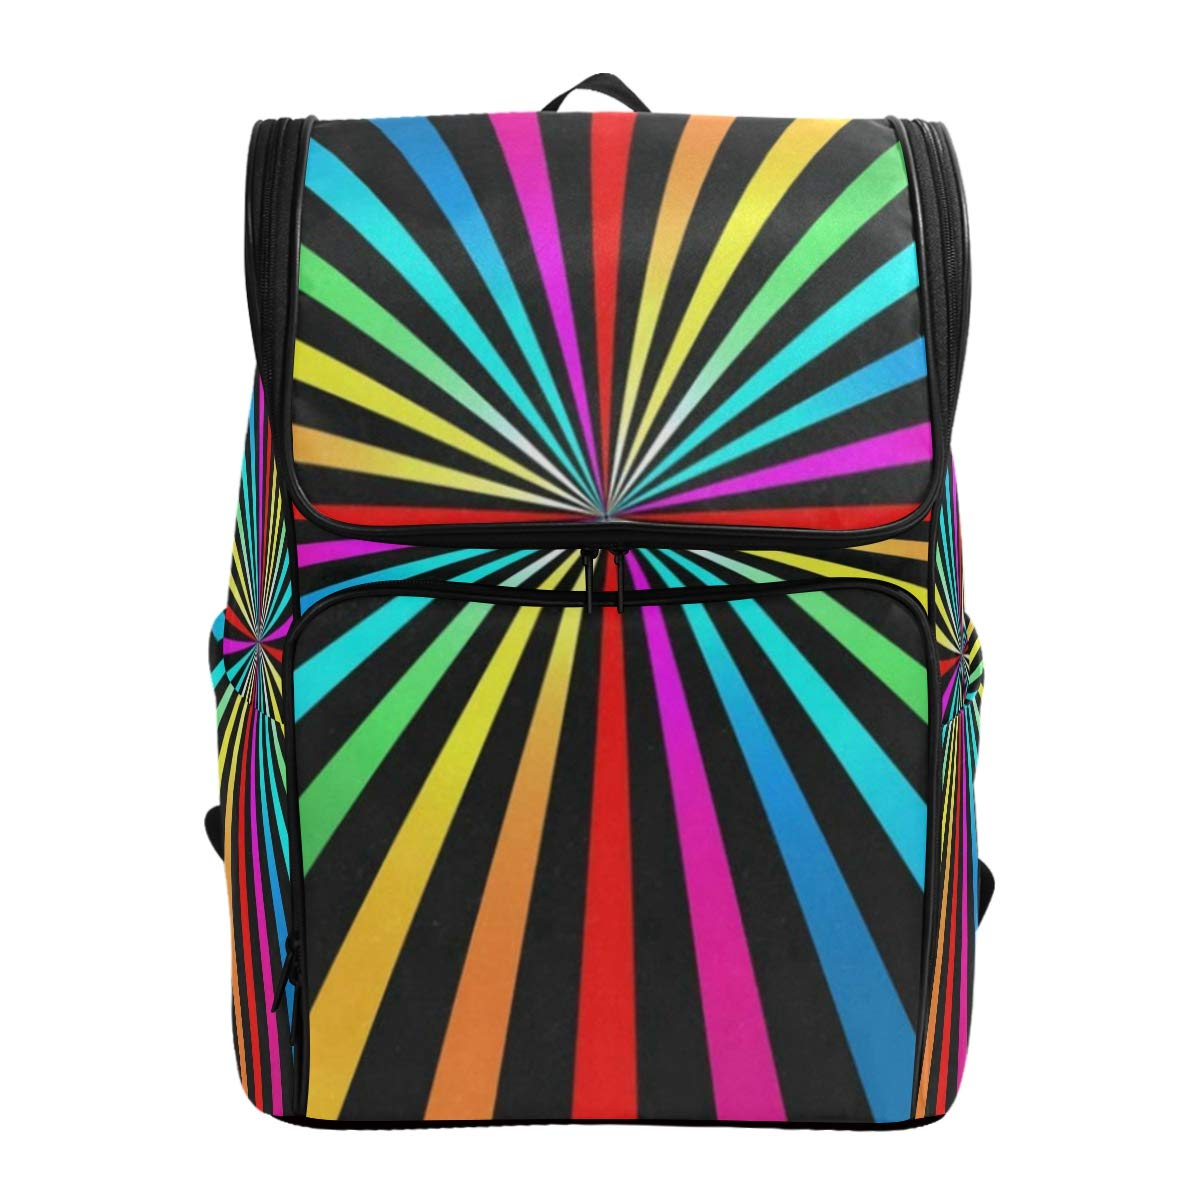 Picture 5 19  x 14  x 7  Laptop Backpack Abstract Falling LeavesGym Backpack for Women Big Hiking Daypack